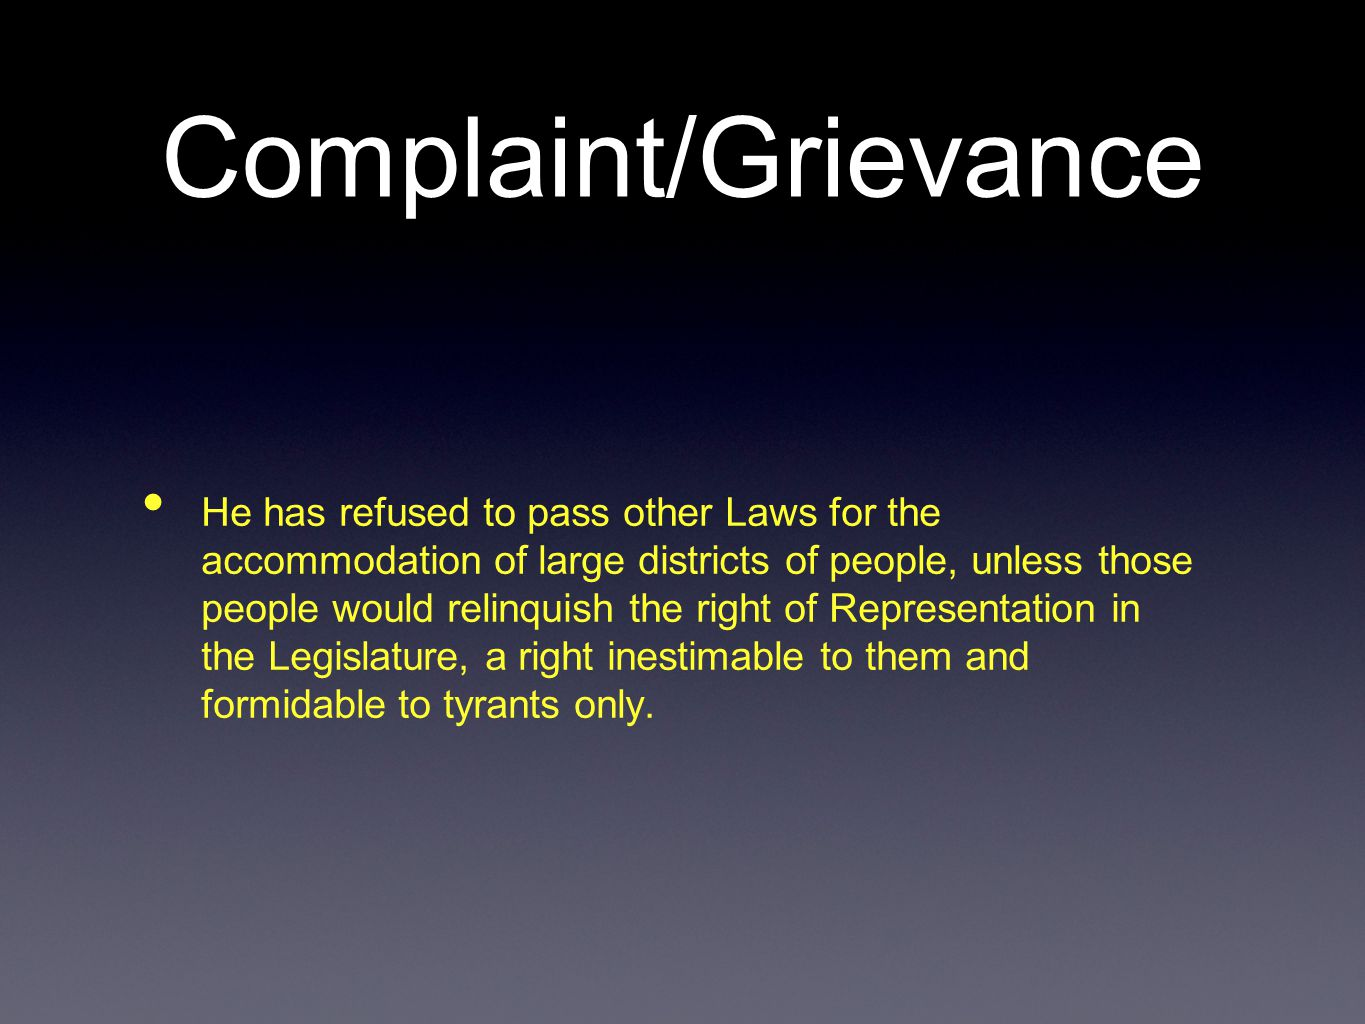 Complaint/Grievance He has refused to pass other Laws for the accommodation of large districts of people, unless those people would relinquish the right of Representation in the Legislature, a right inestimable to them and formidable to tyrants only.